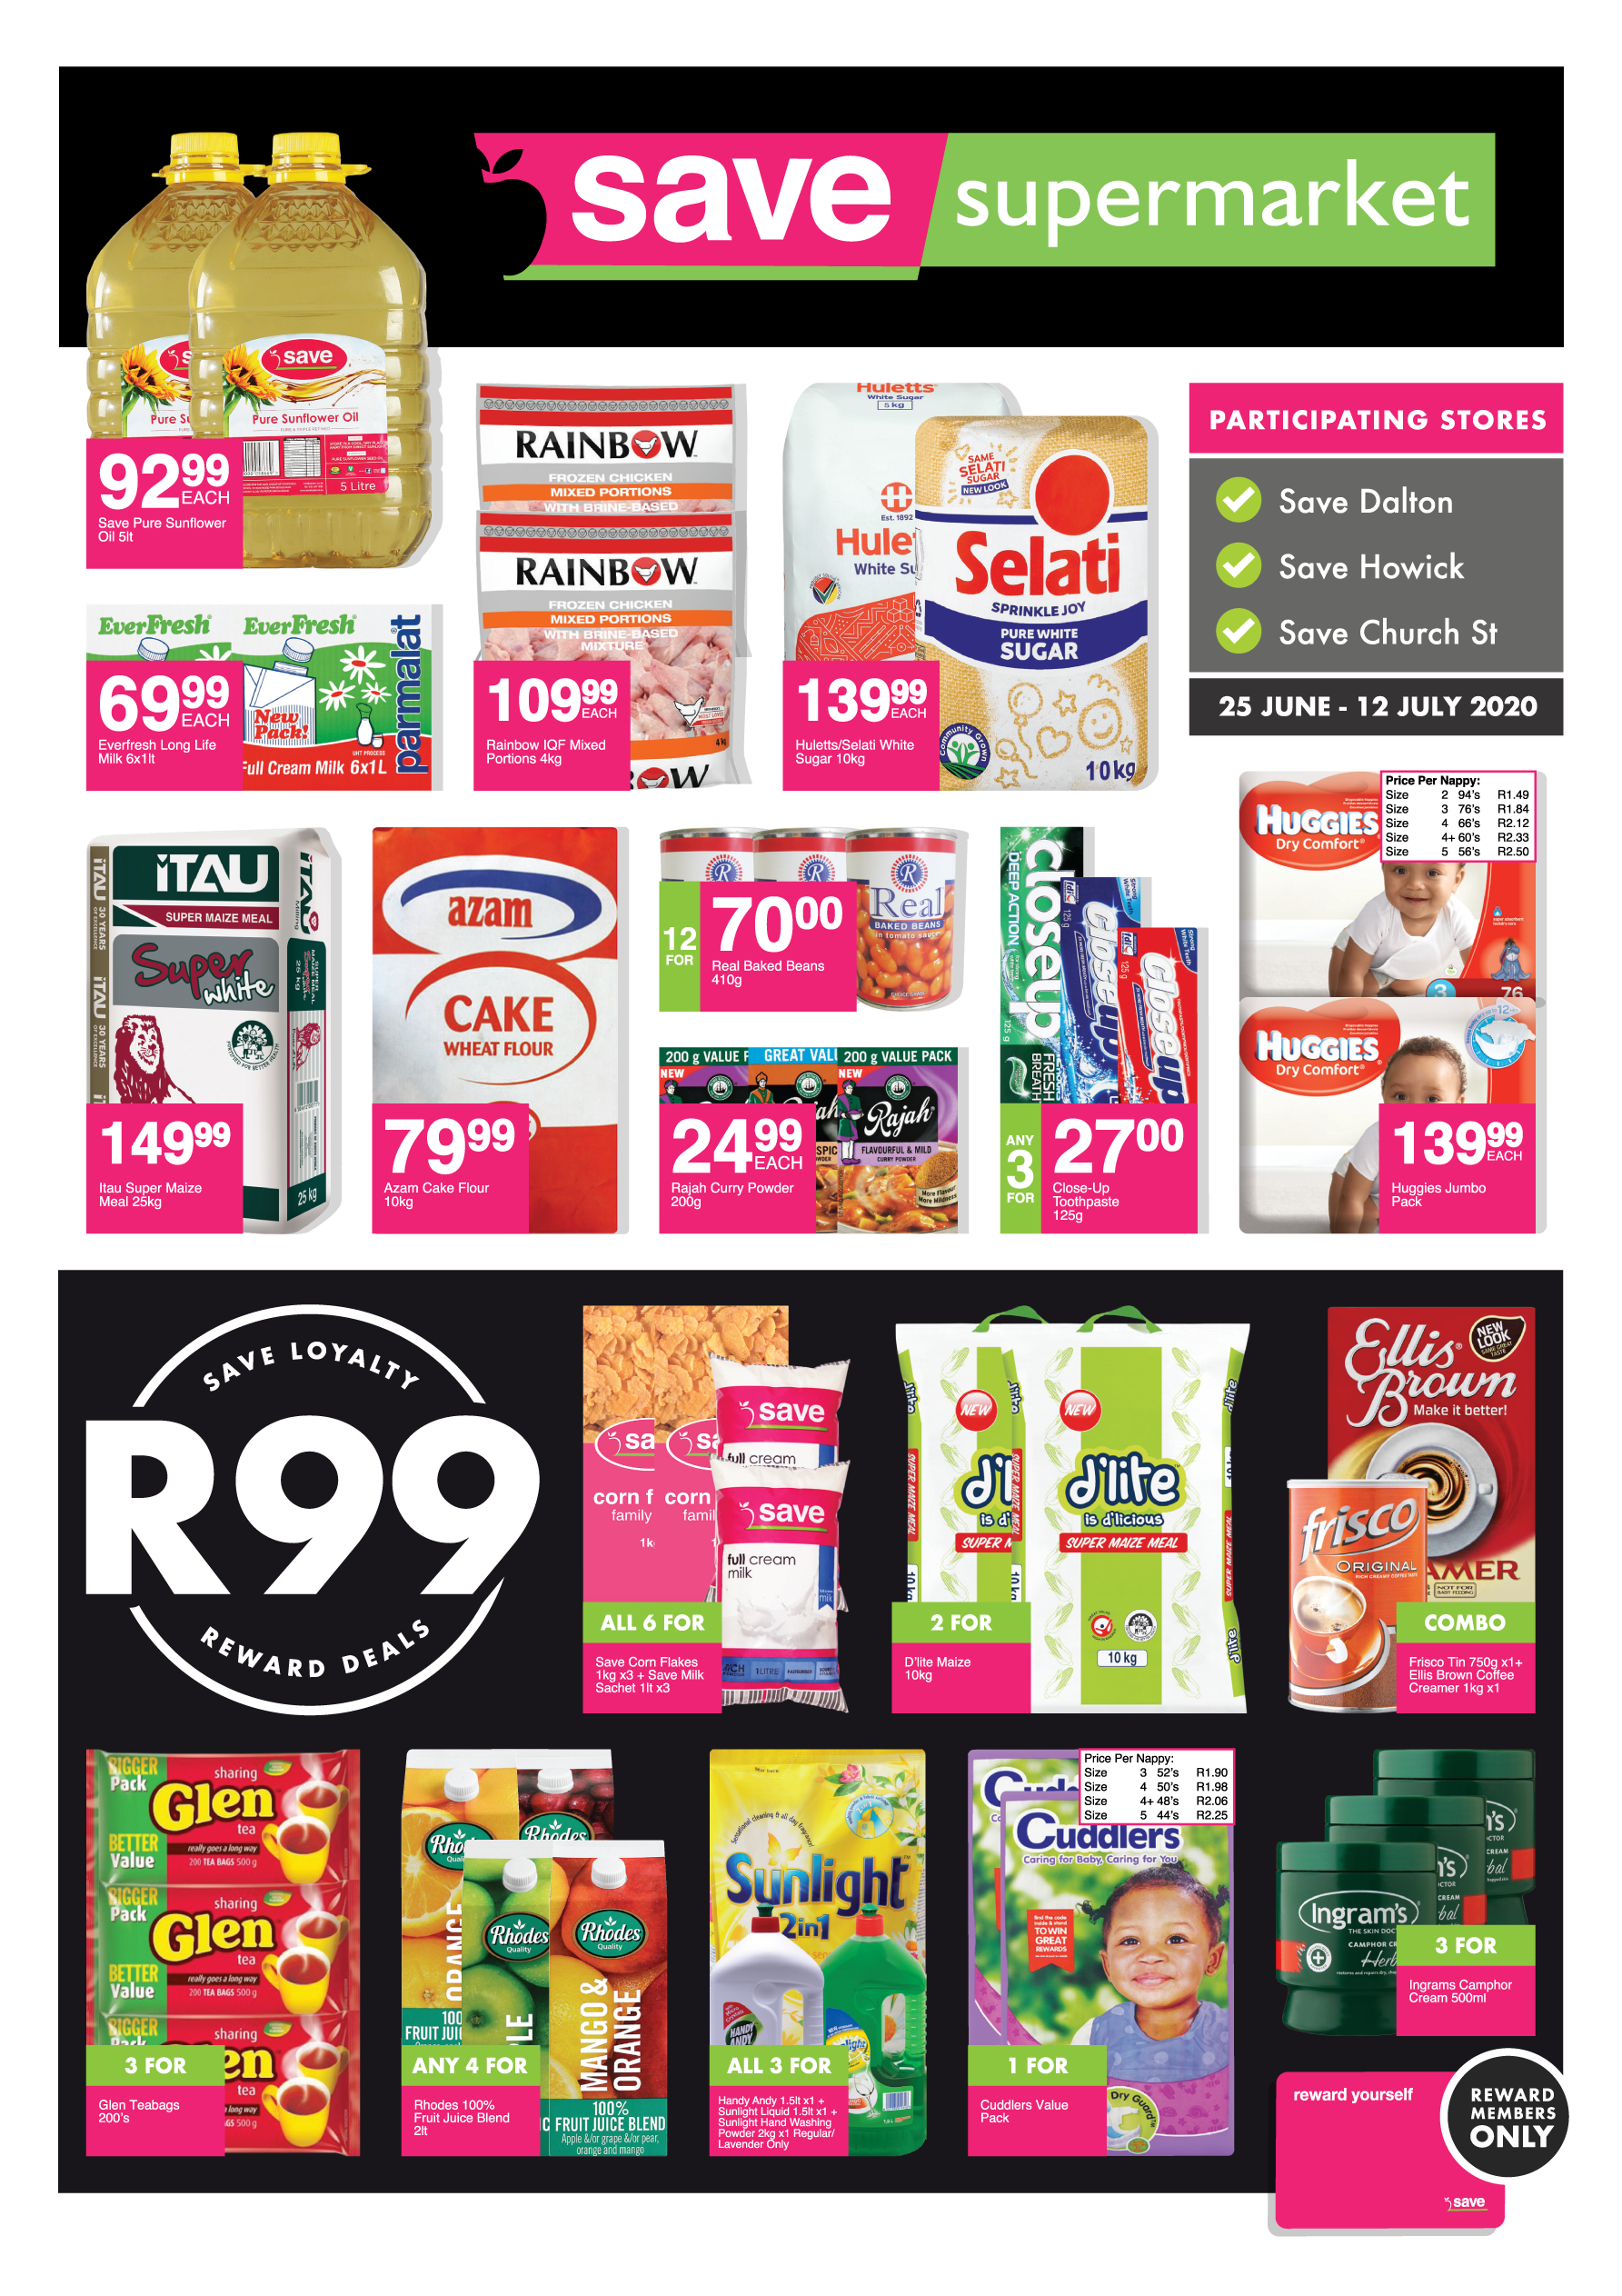 Supermarkets<br>Church/Howick/Dalton Specials <br> - valid from 25 June<br>until 12 July 2020